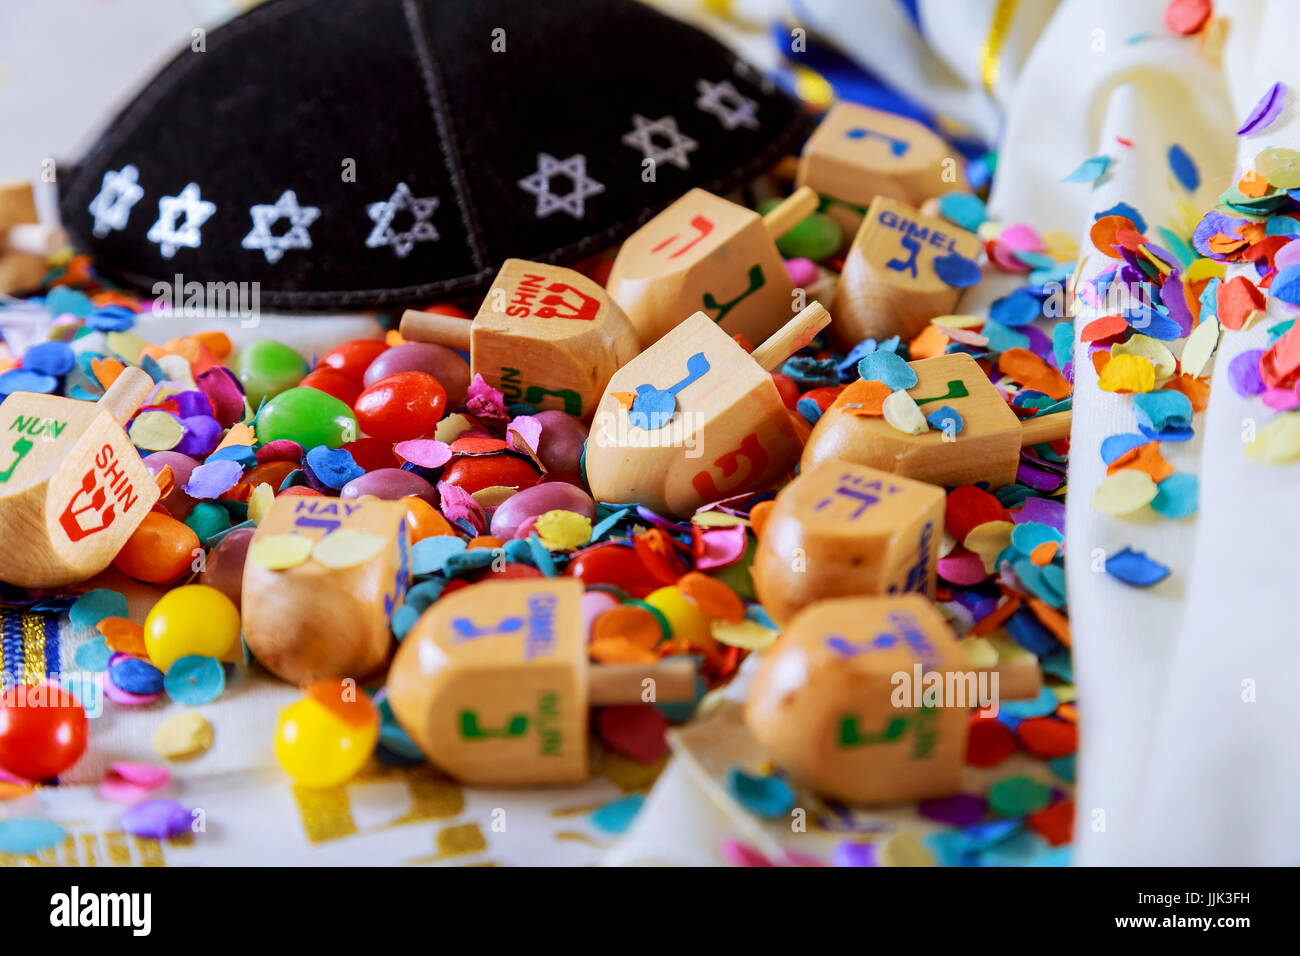 Jewish holiday Dreidel still life composed of elements the Chanukah Hanukkah festival. - Stock Image